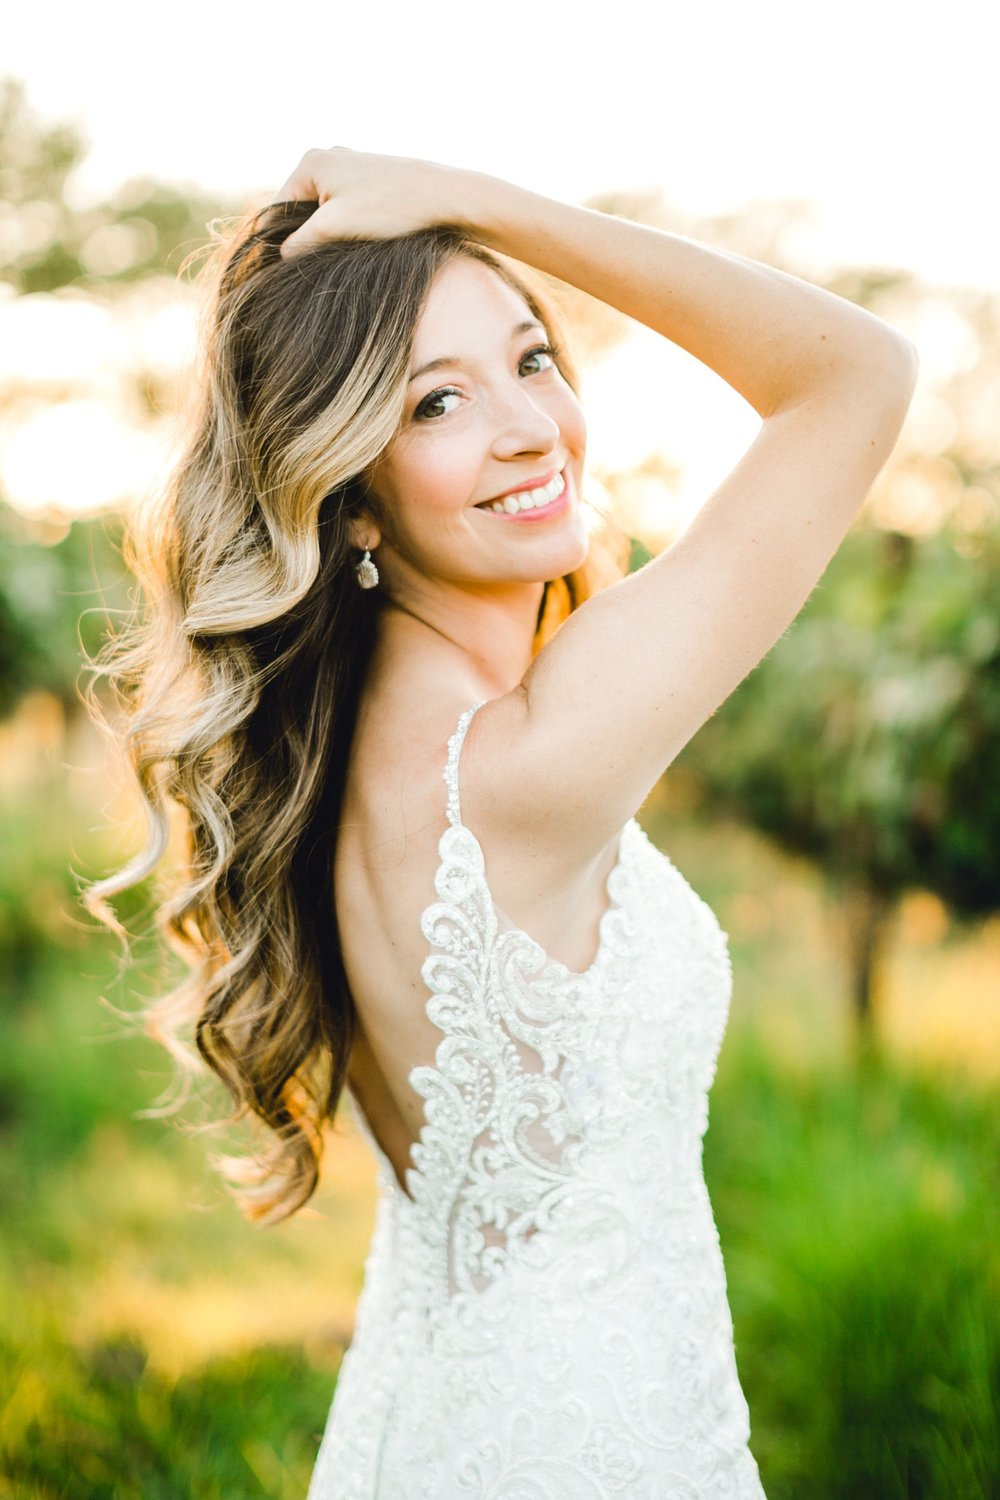 Ashley_Parr_Bridals_ALLEEJ_caprock_winery_romantic_elegant0023.jpg